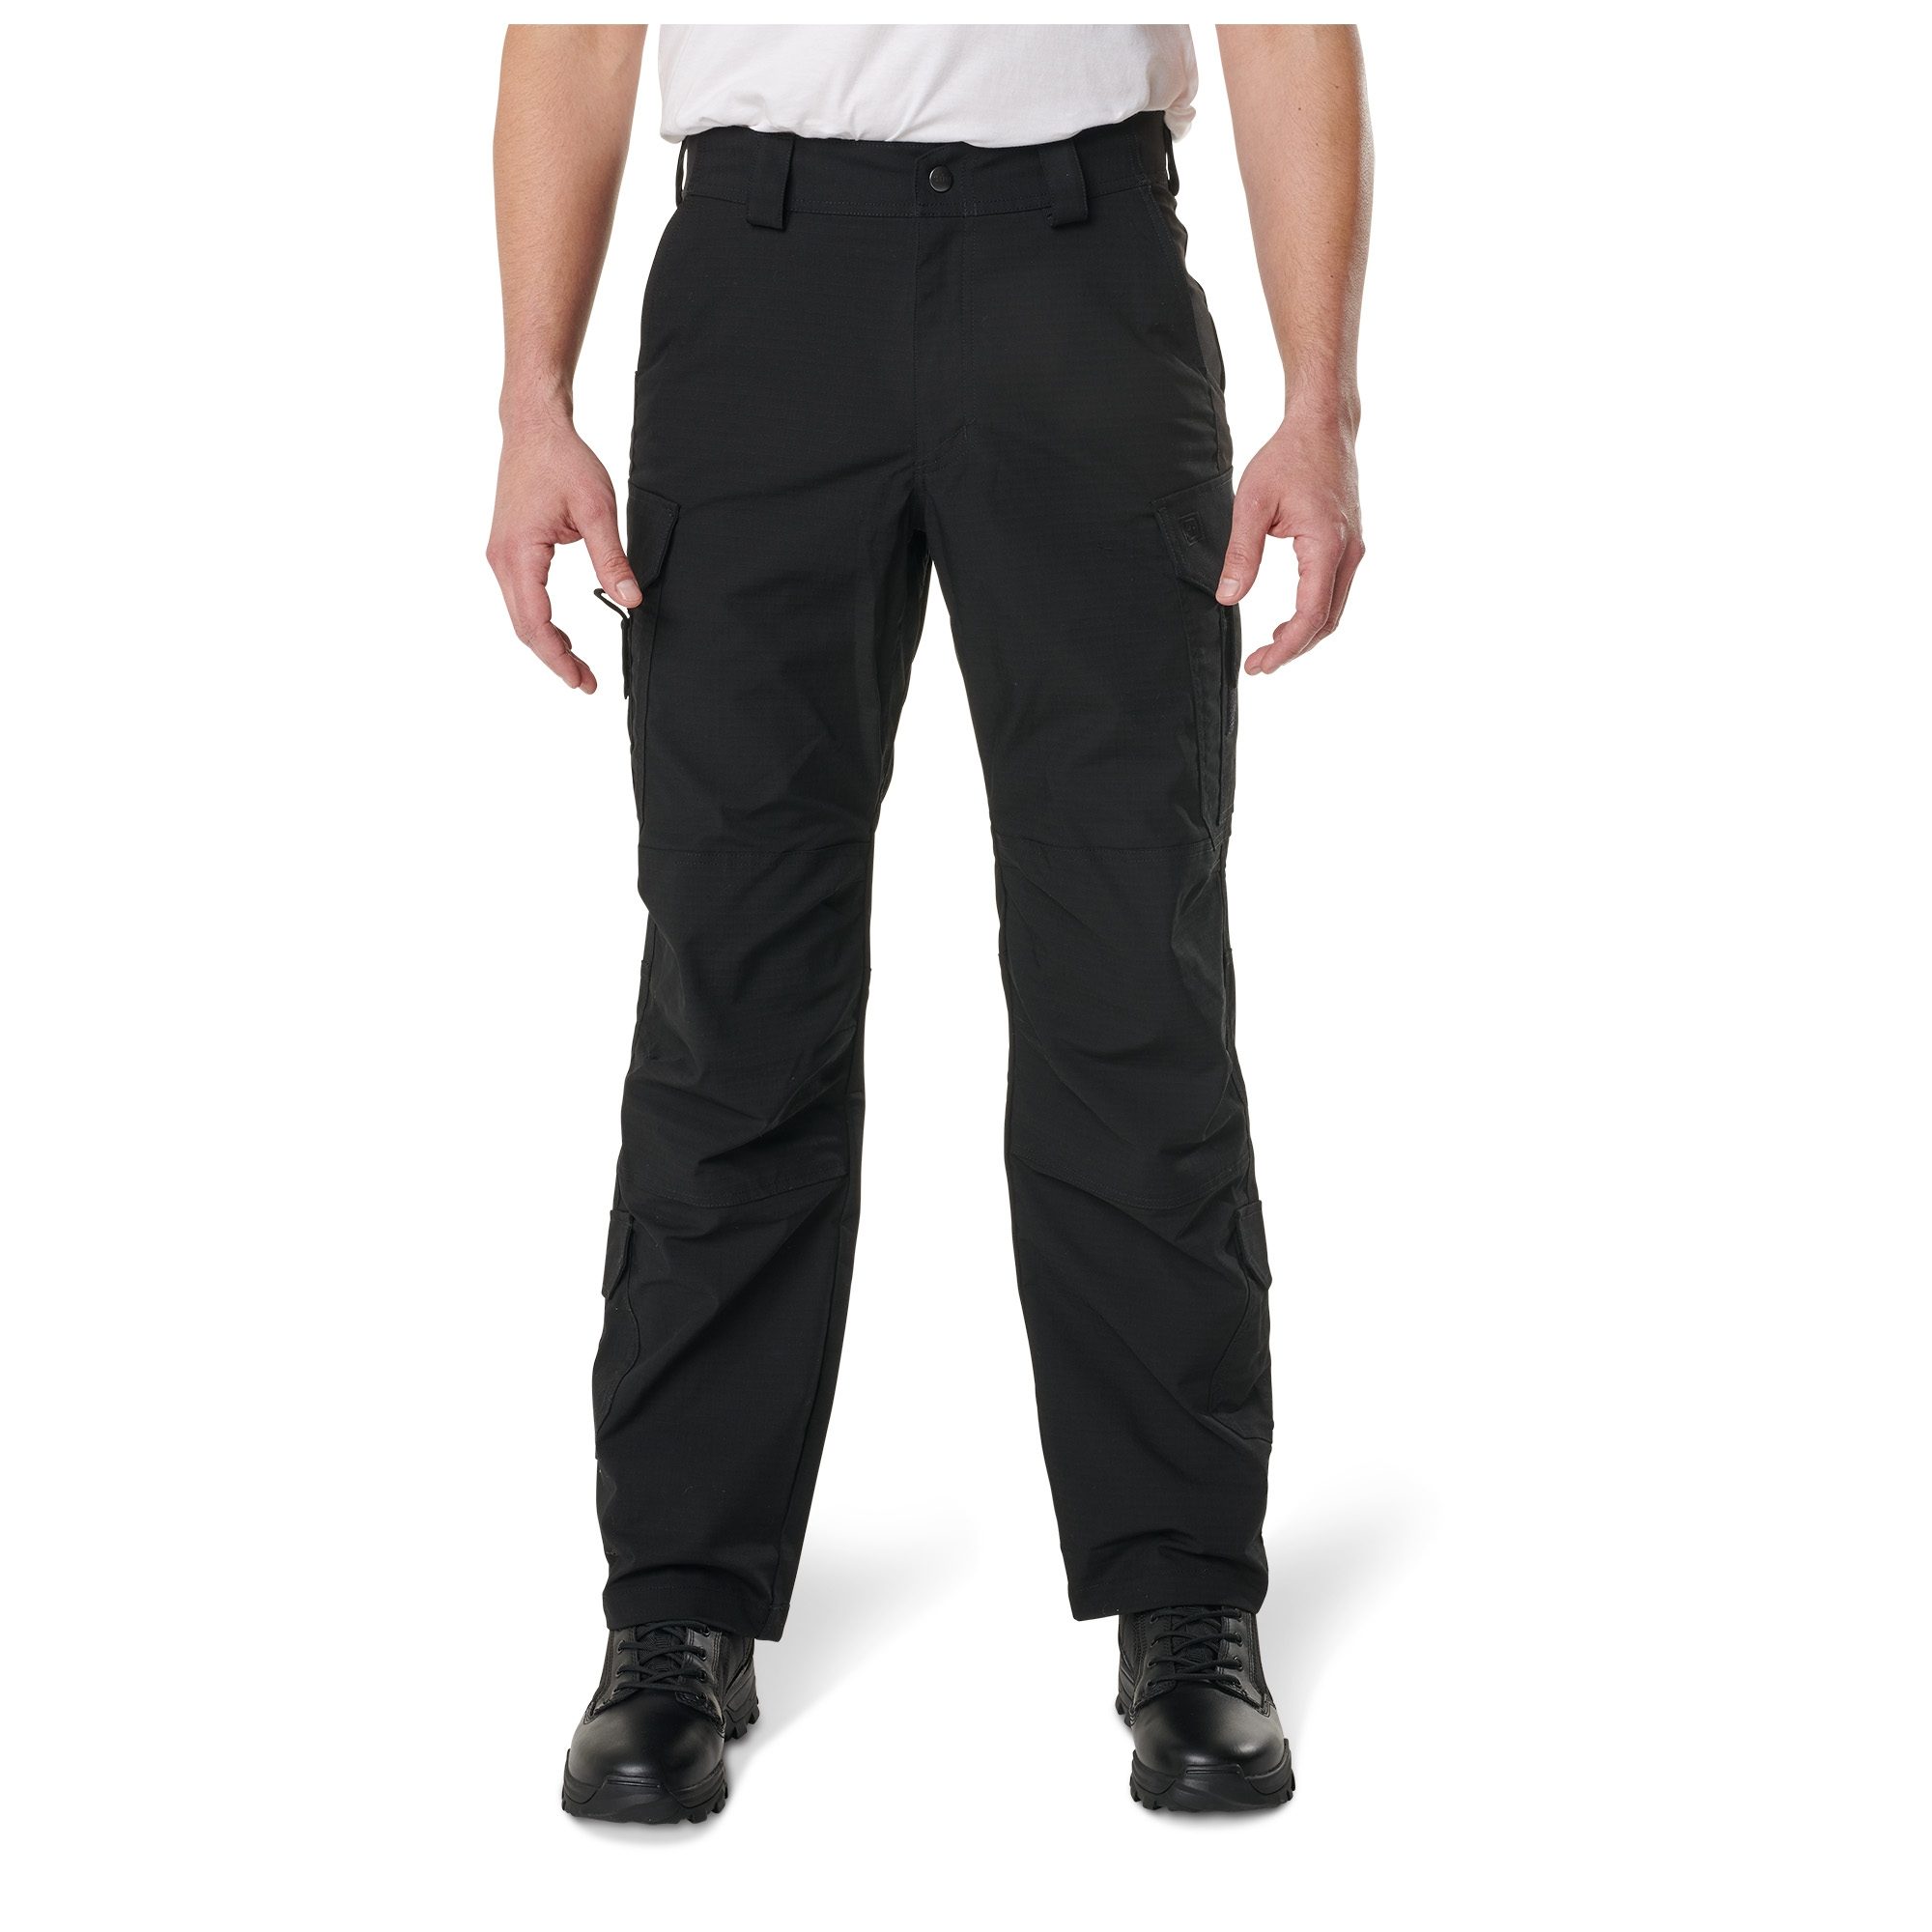 49bbb458 5.11 Tactical Stryke Pant - Lightweight Cargo Pants For The Range ...